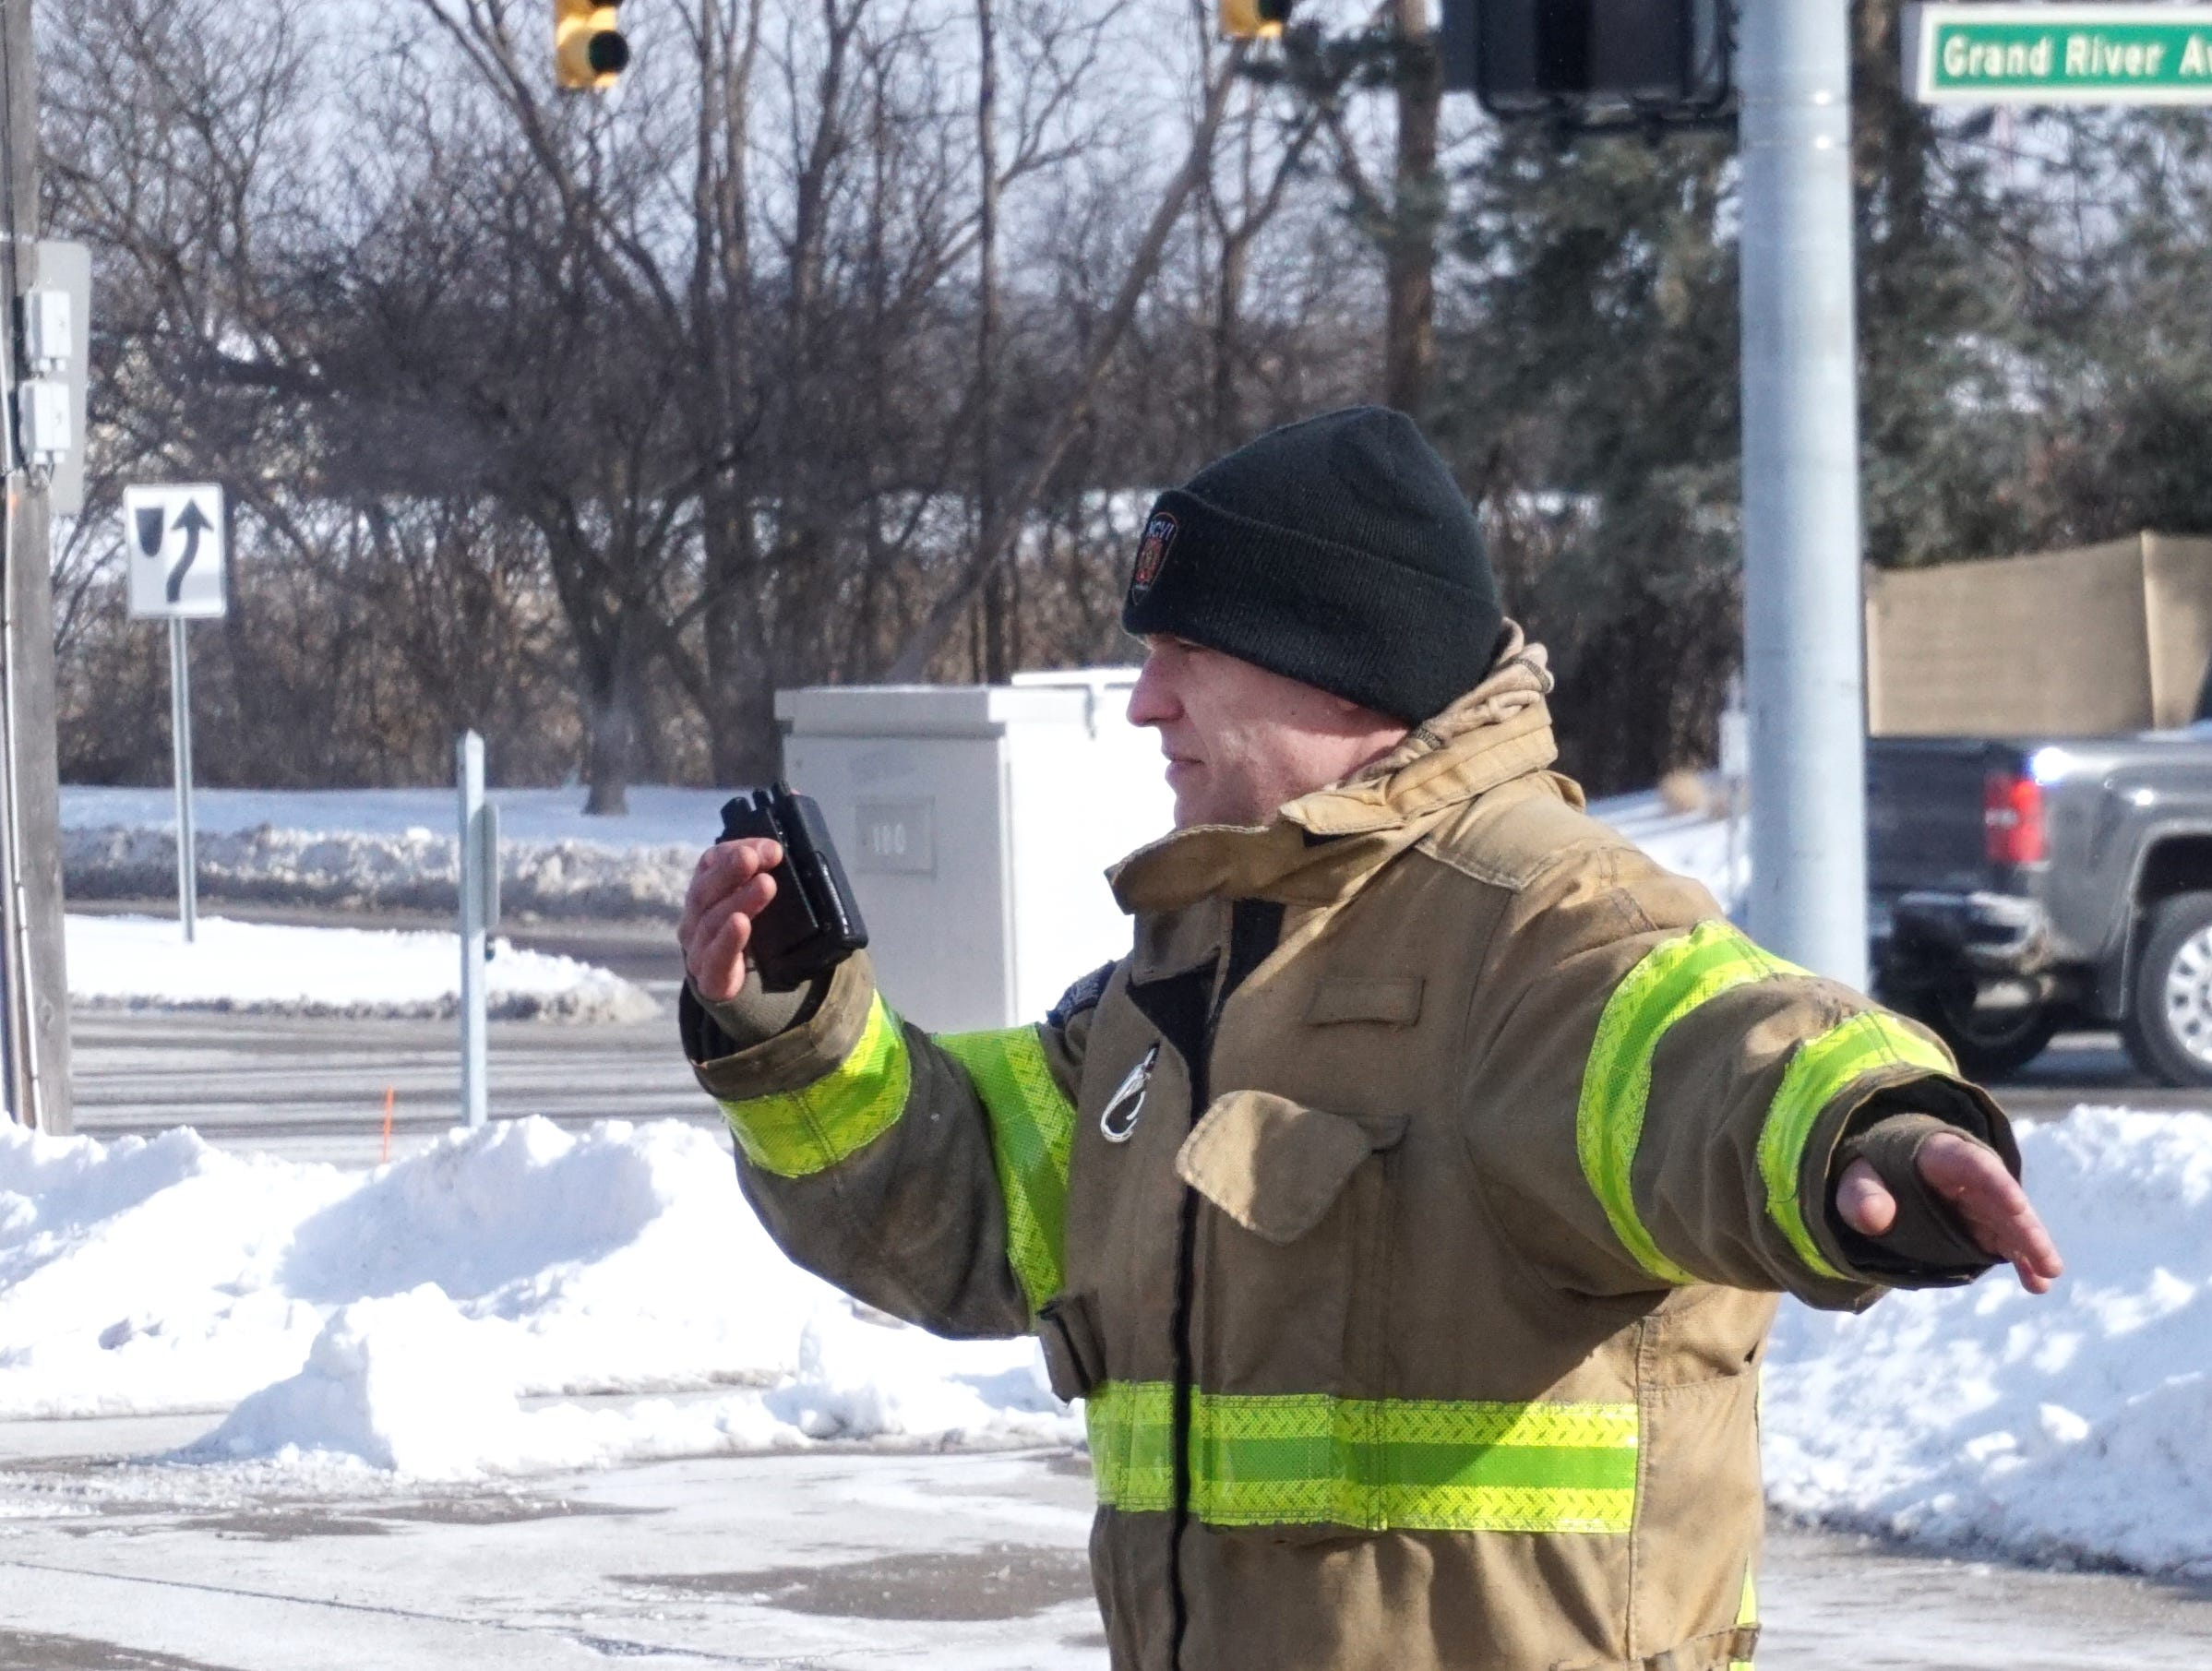 With at least momentarily bare hands, Novi firefighter David Pienik guides in a firetruck after an emergency call at Fire Station #1. Wind chill readings at the time of this photo were more than 20 degrees below zero and frostbite could occur when bare skin is exposed for not much more than five minutes at a time.